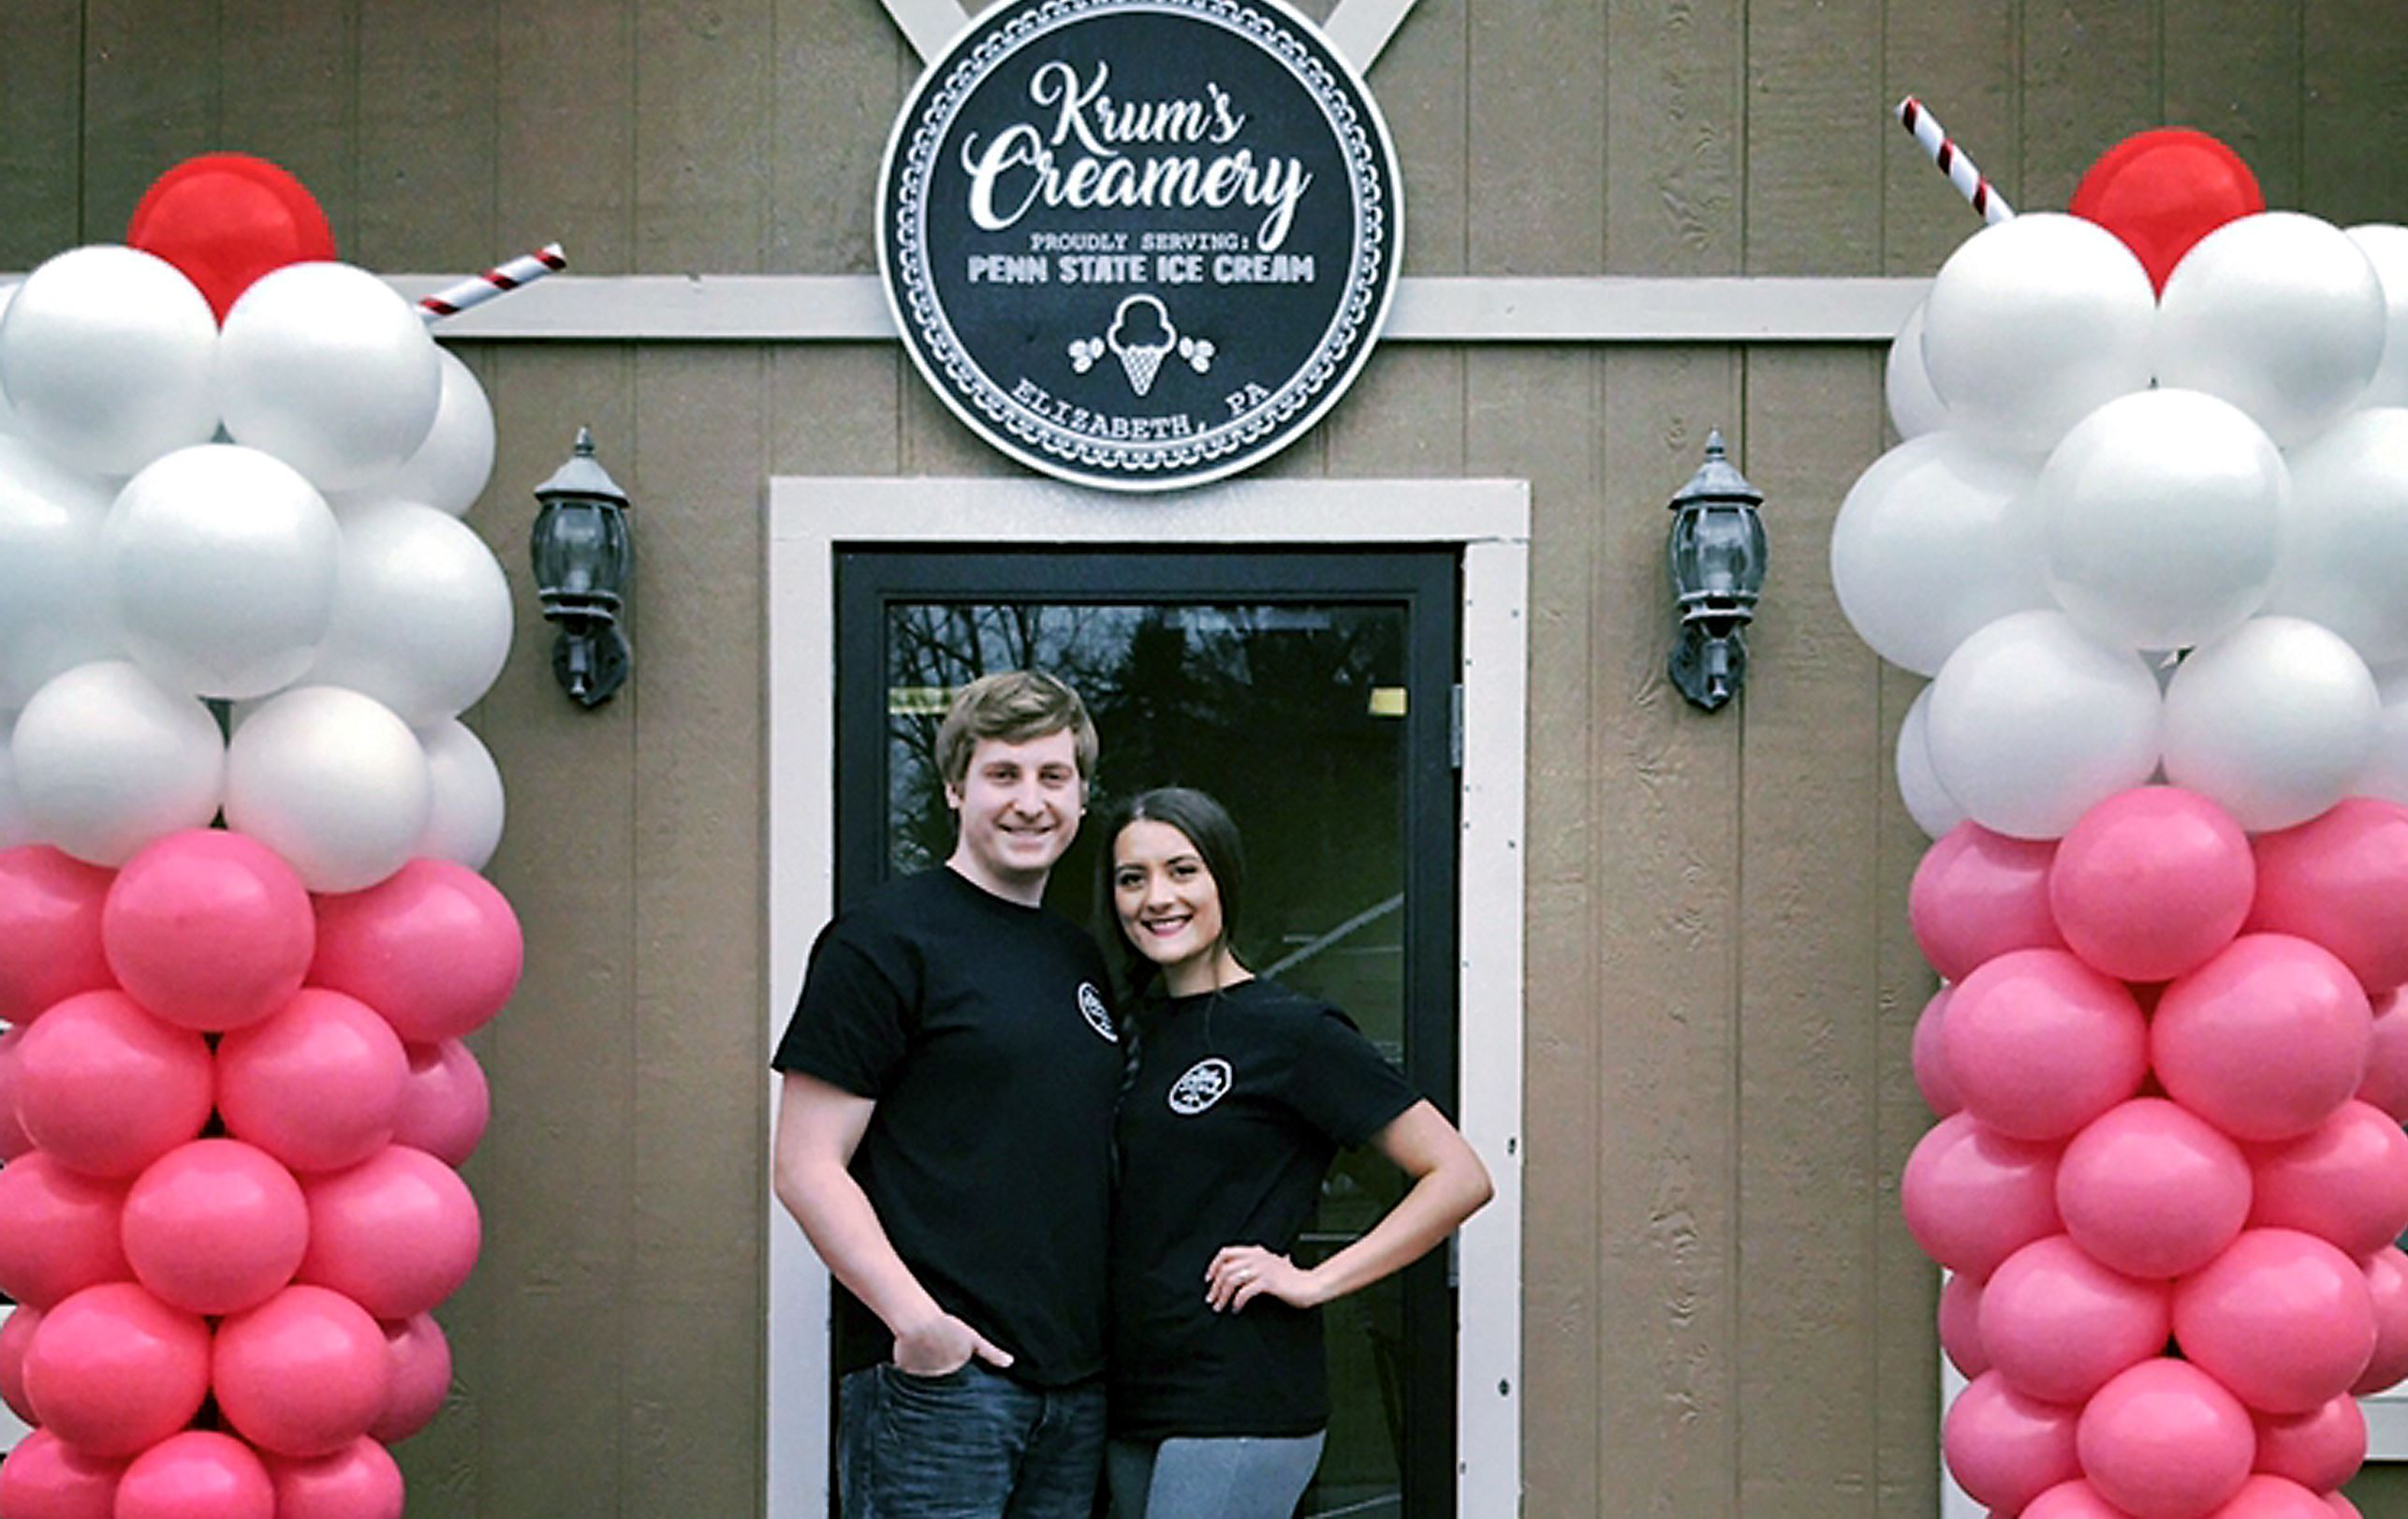 krums4-3 Steve and Alexia Krum on the grand opening day of their shop, Krum's Creamery, in Elizabeth Township in March.